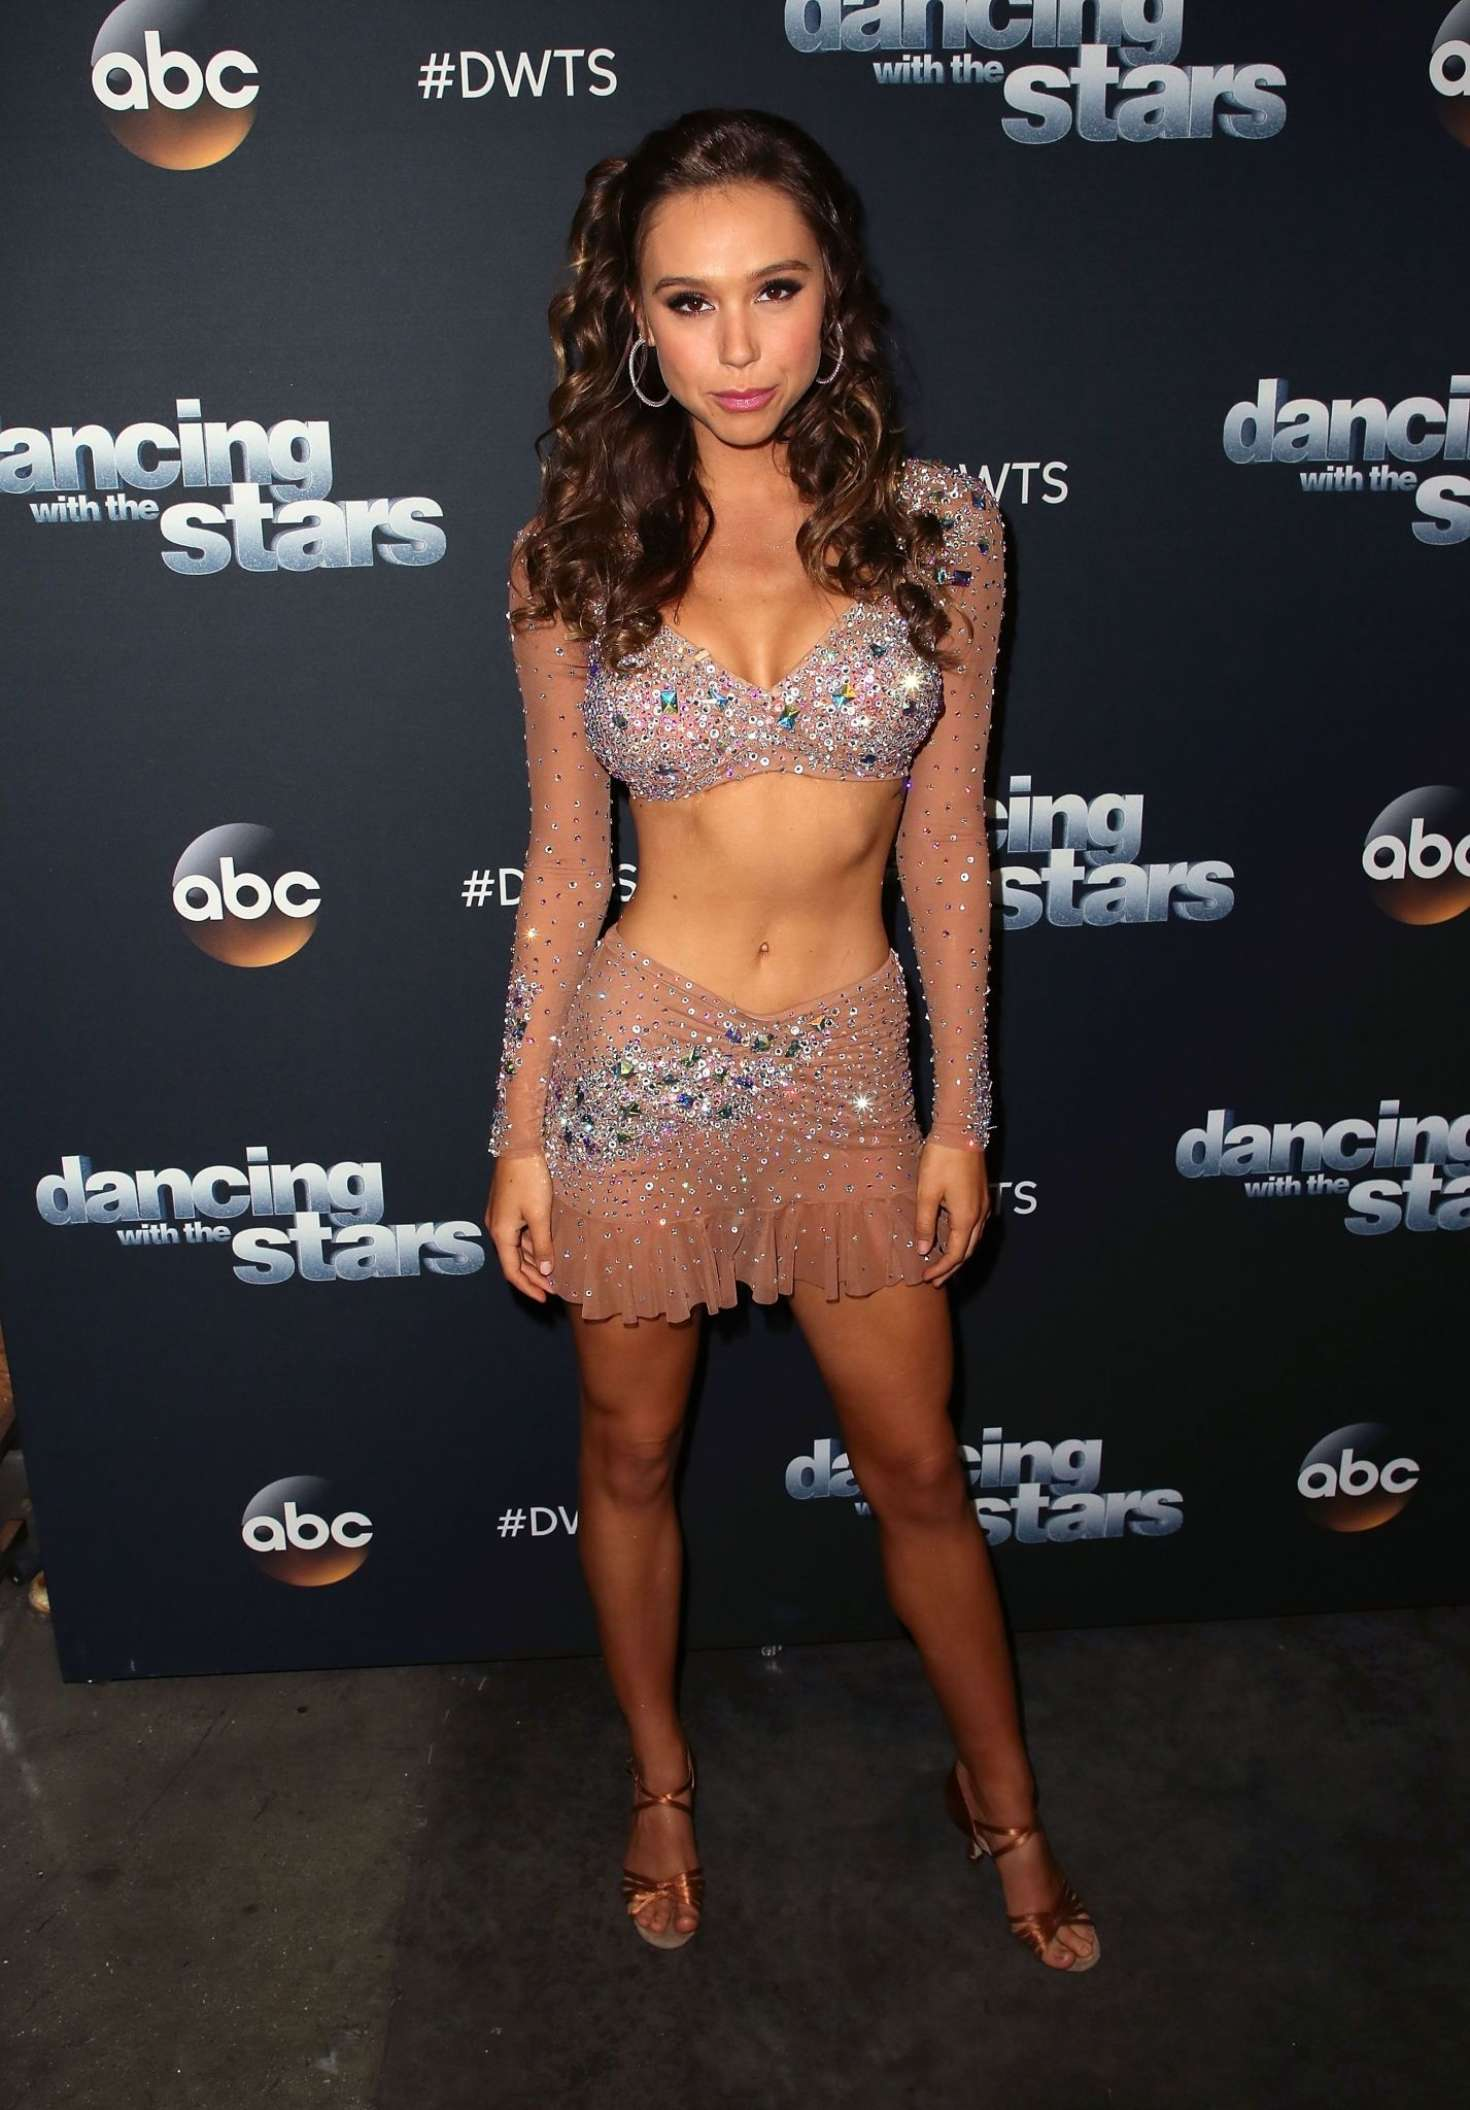 Alexis Ren - 'Dancing with the Stars' Season 27 in Los Angeles